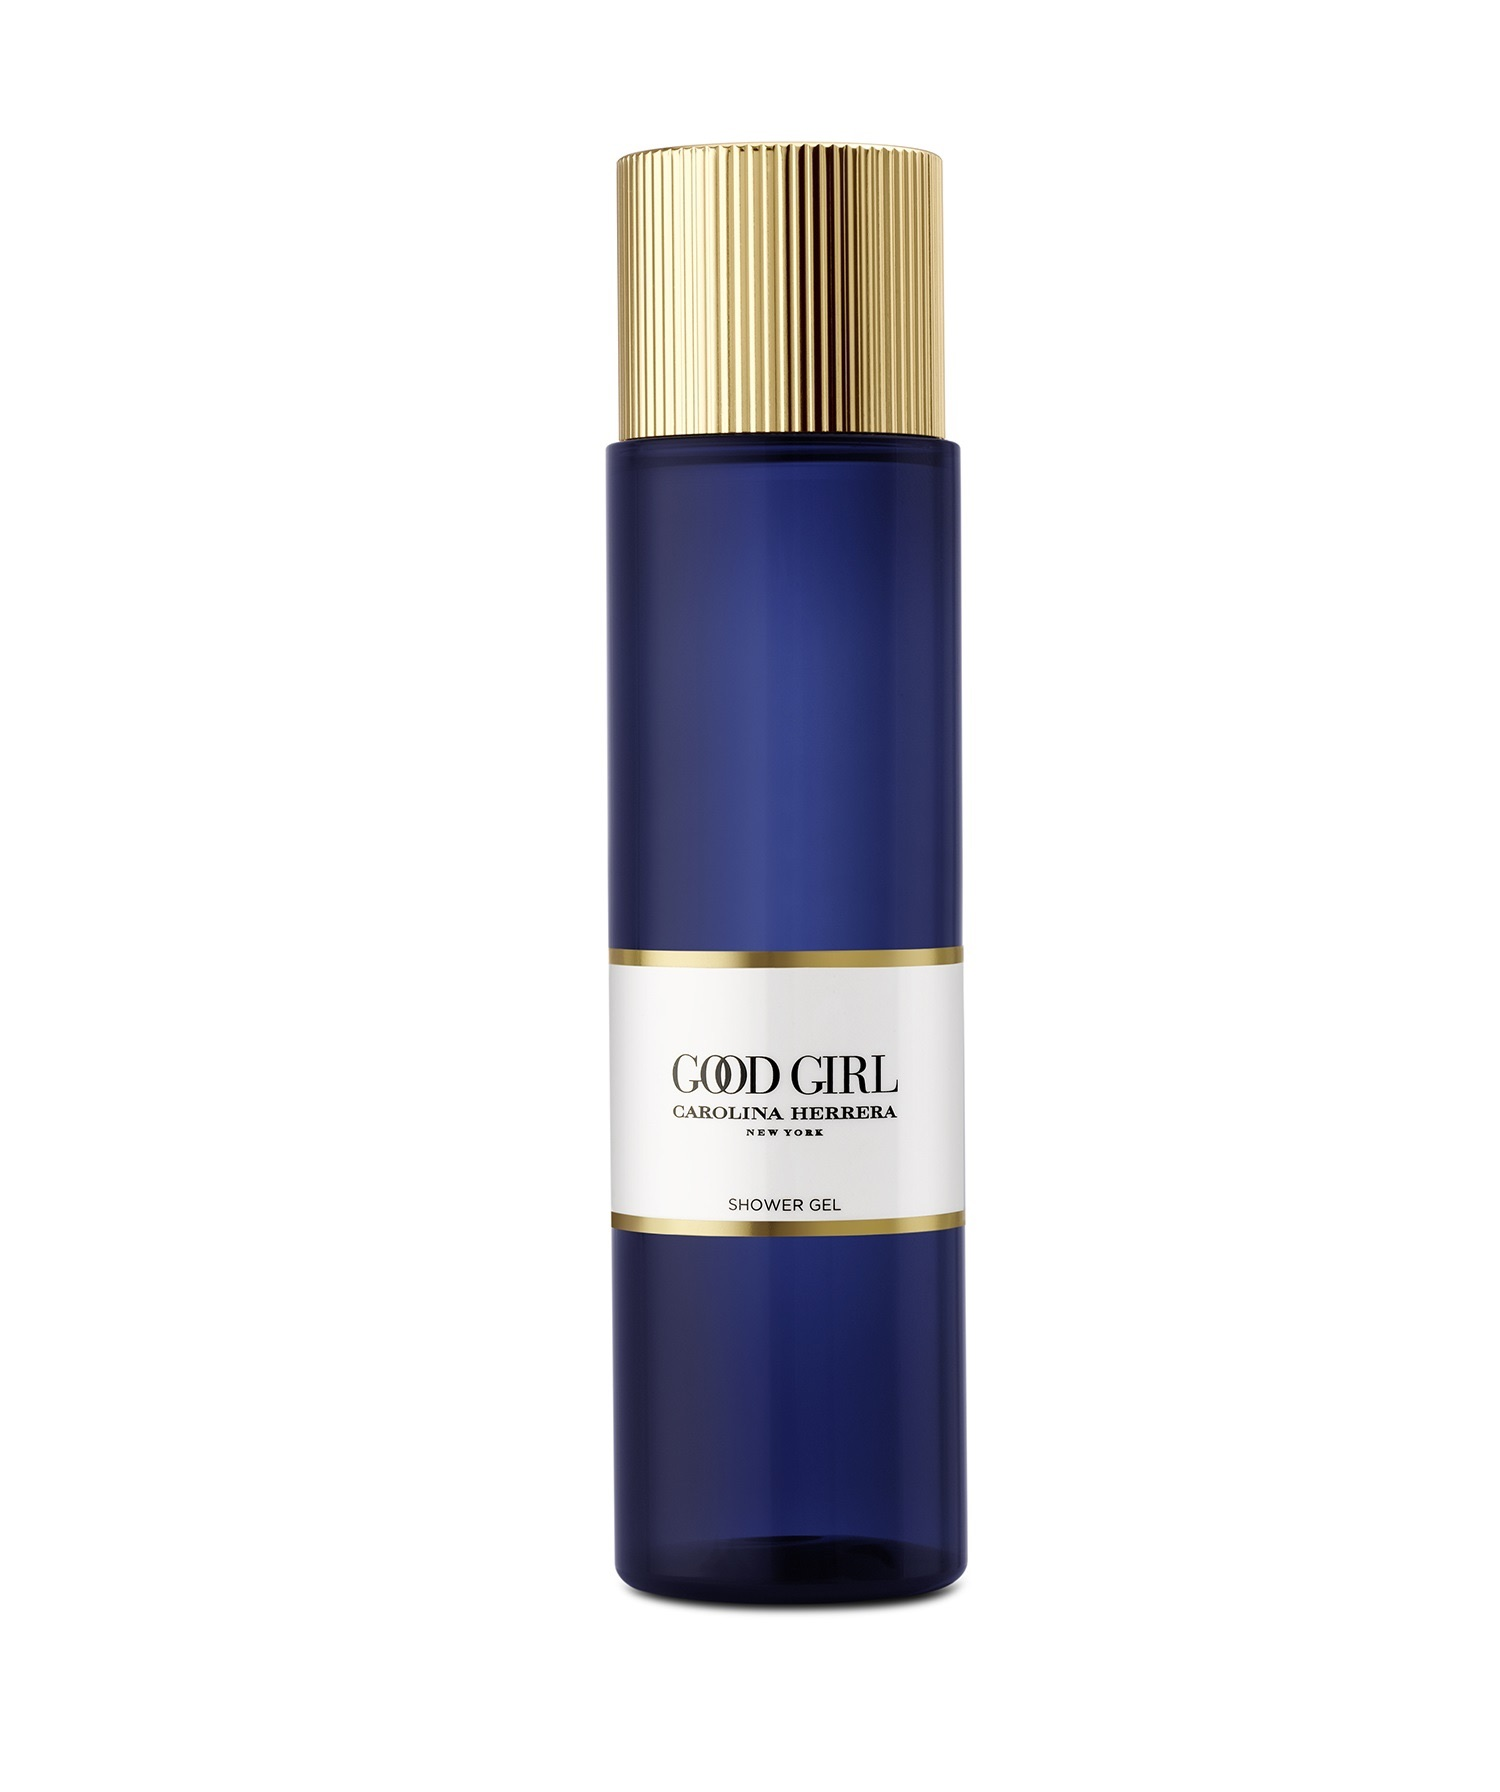 Carolina Herrera Good Girl Shower Gel 200ml